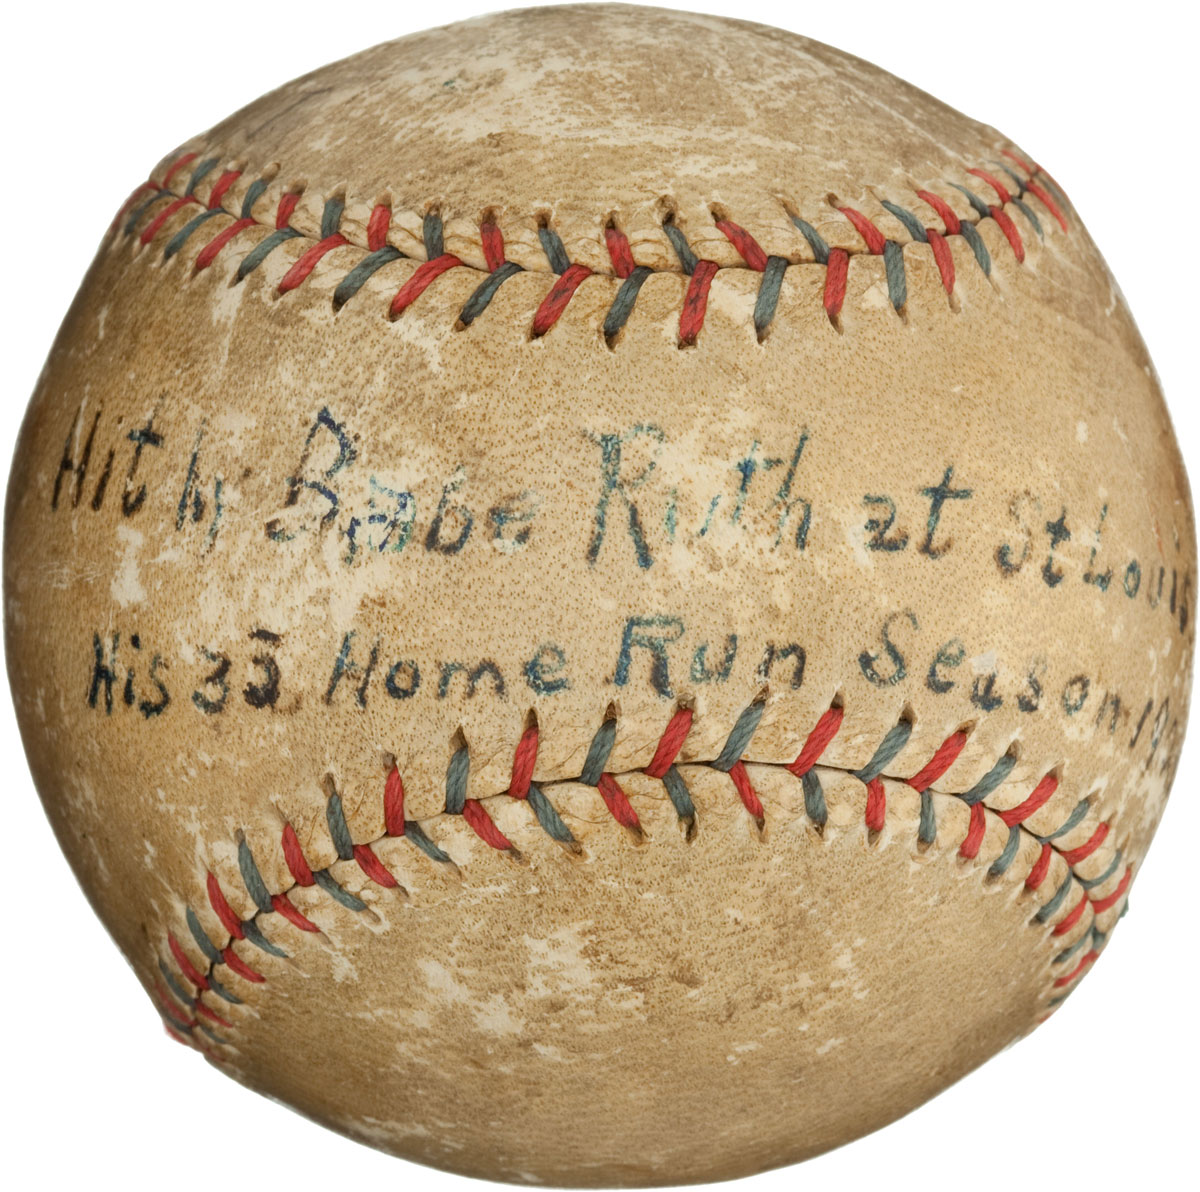 1921 Babe Ruth Home Run Baseball Could Fetch $50 000 At